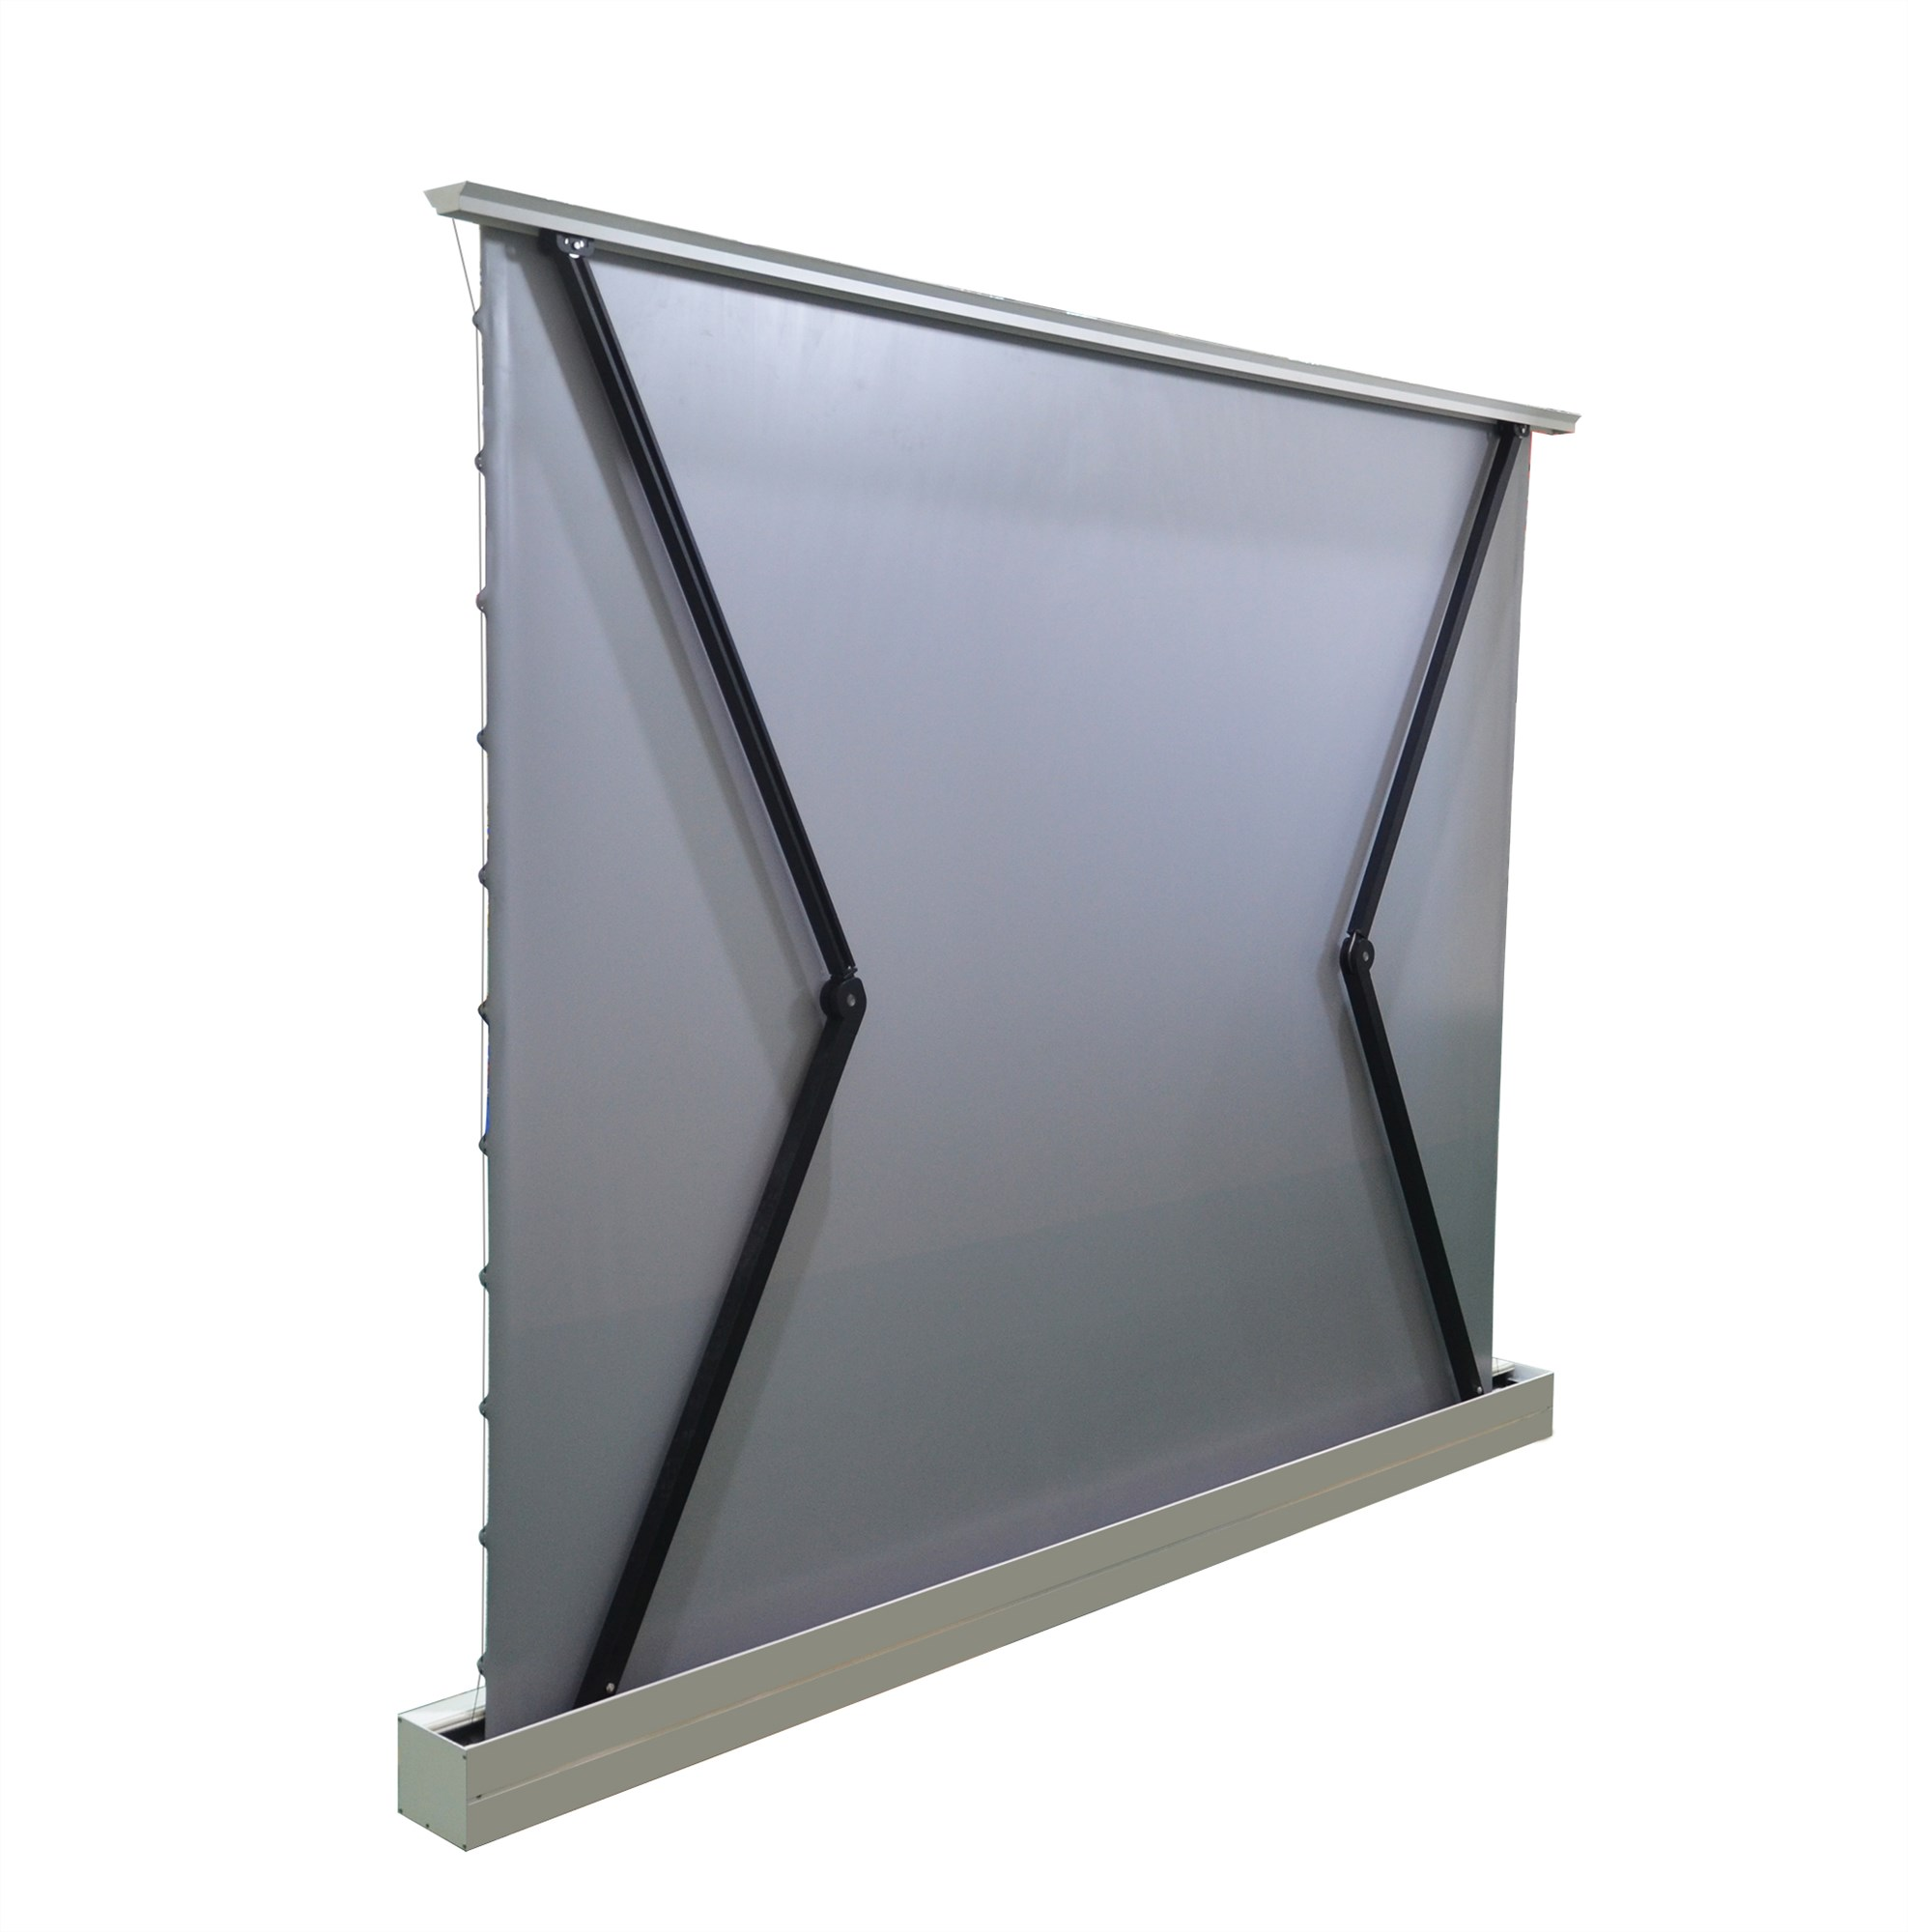 manual projection screen price inquire now for home-4